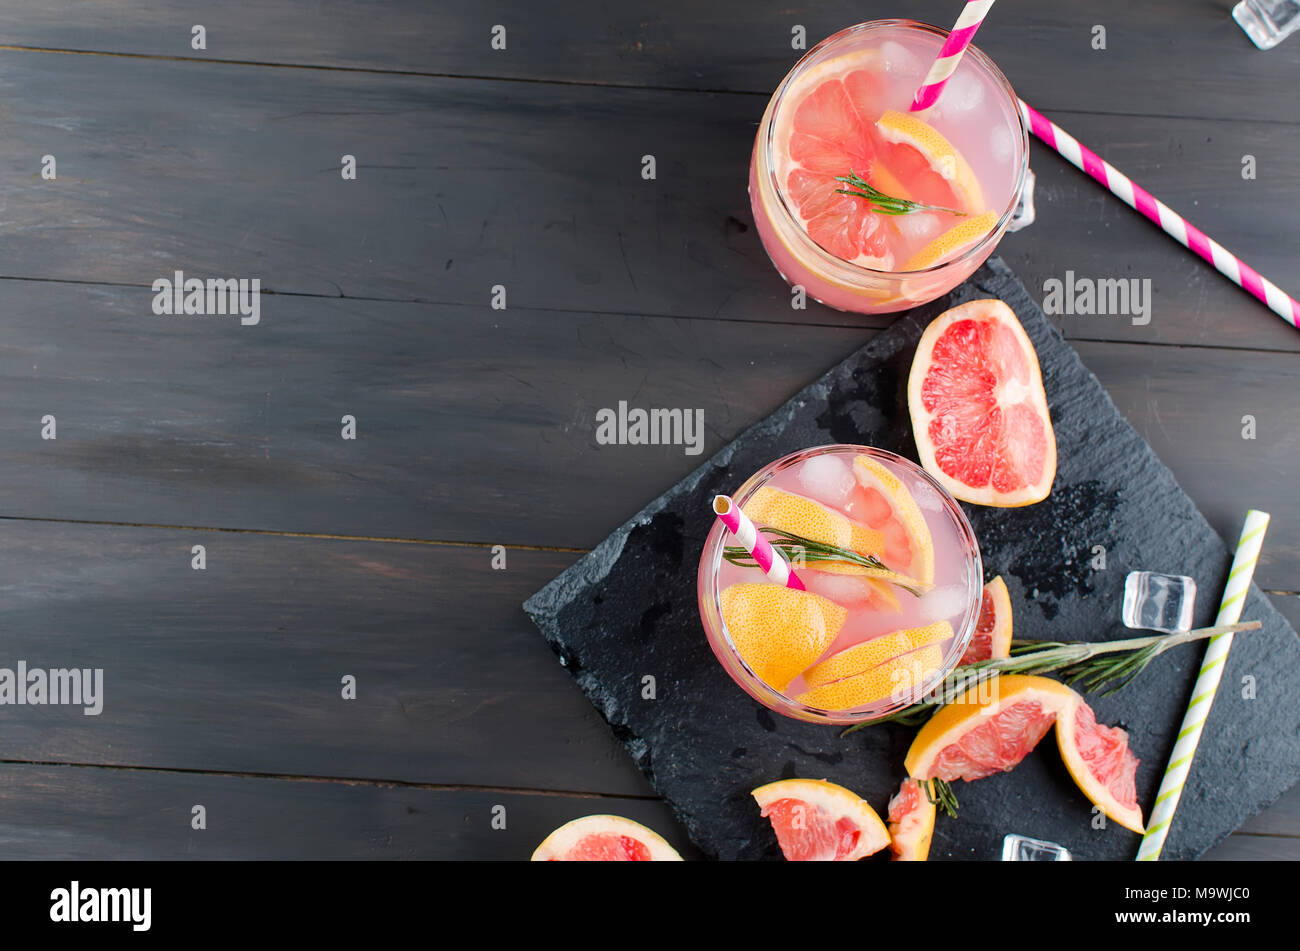 Cocktail with grapefruit slices and ice, ingredients for a drink on dark wooden table, copy space Stock Photo